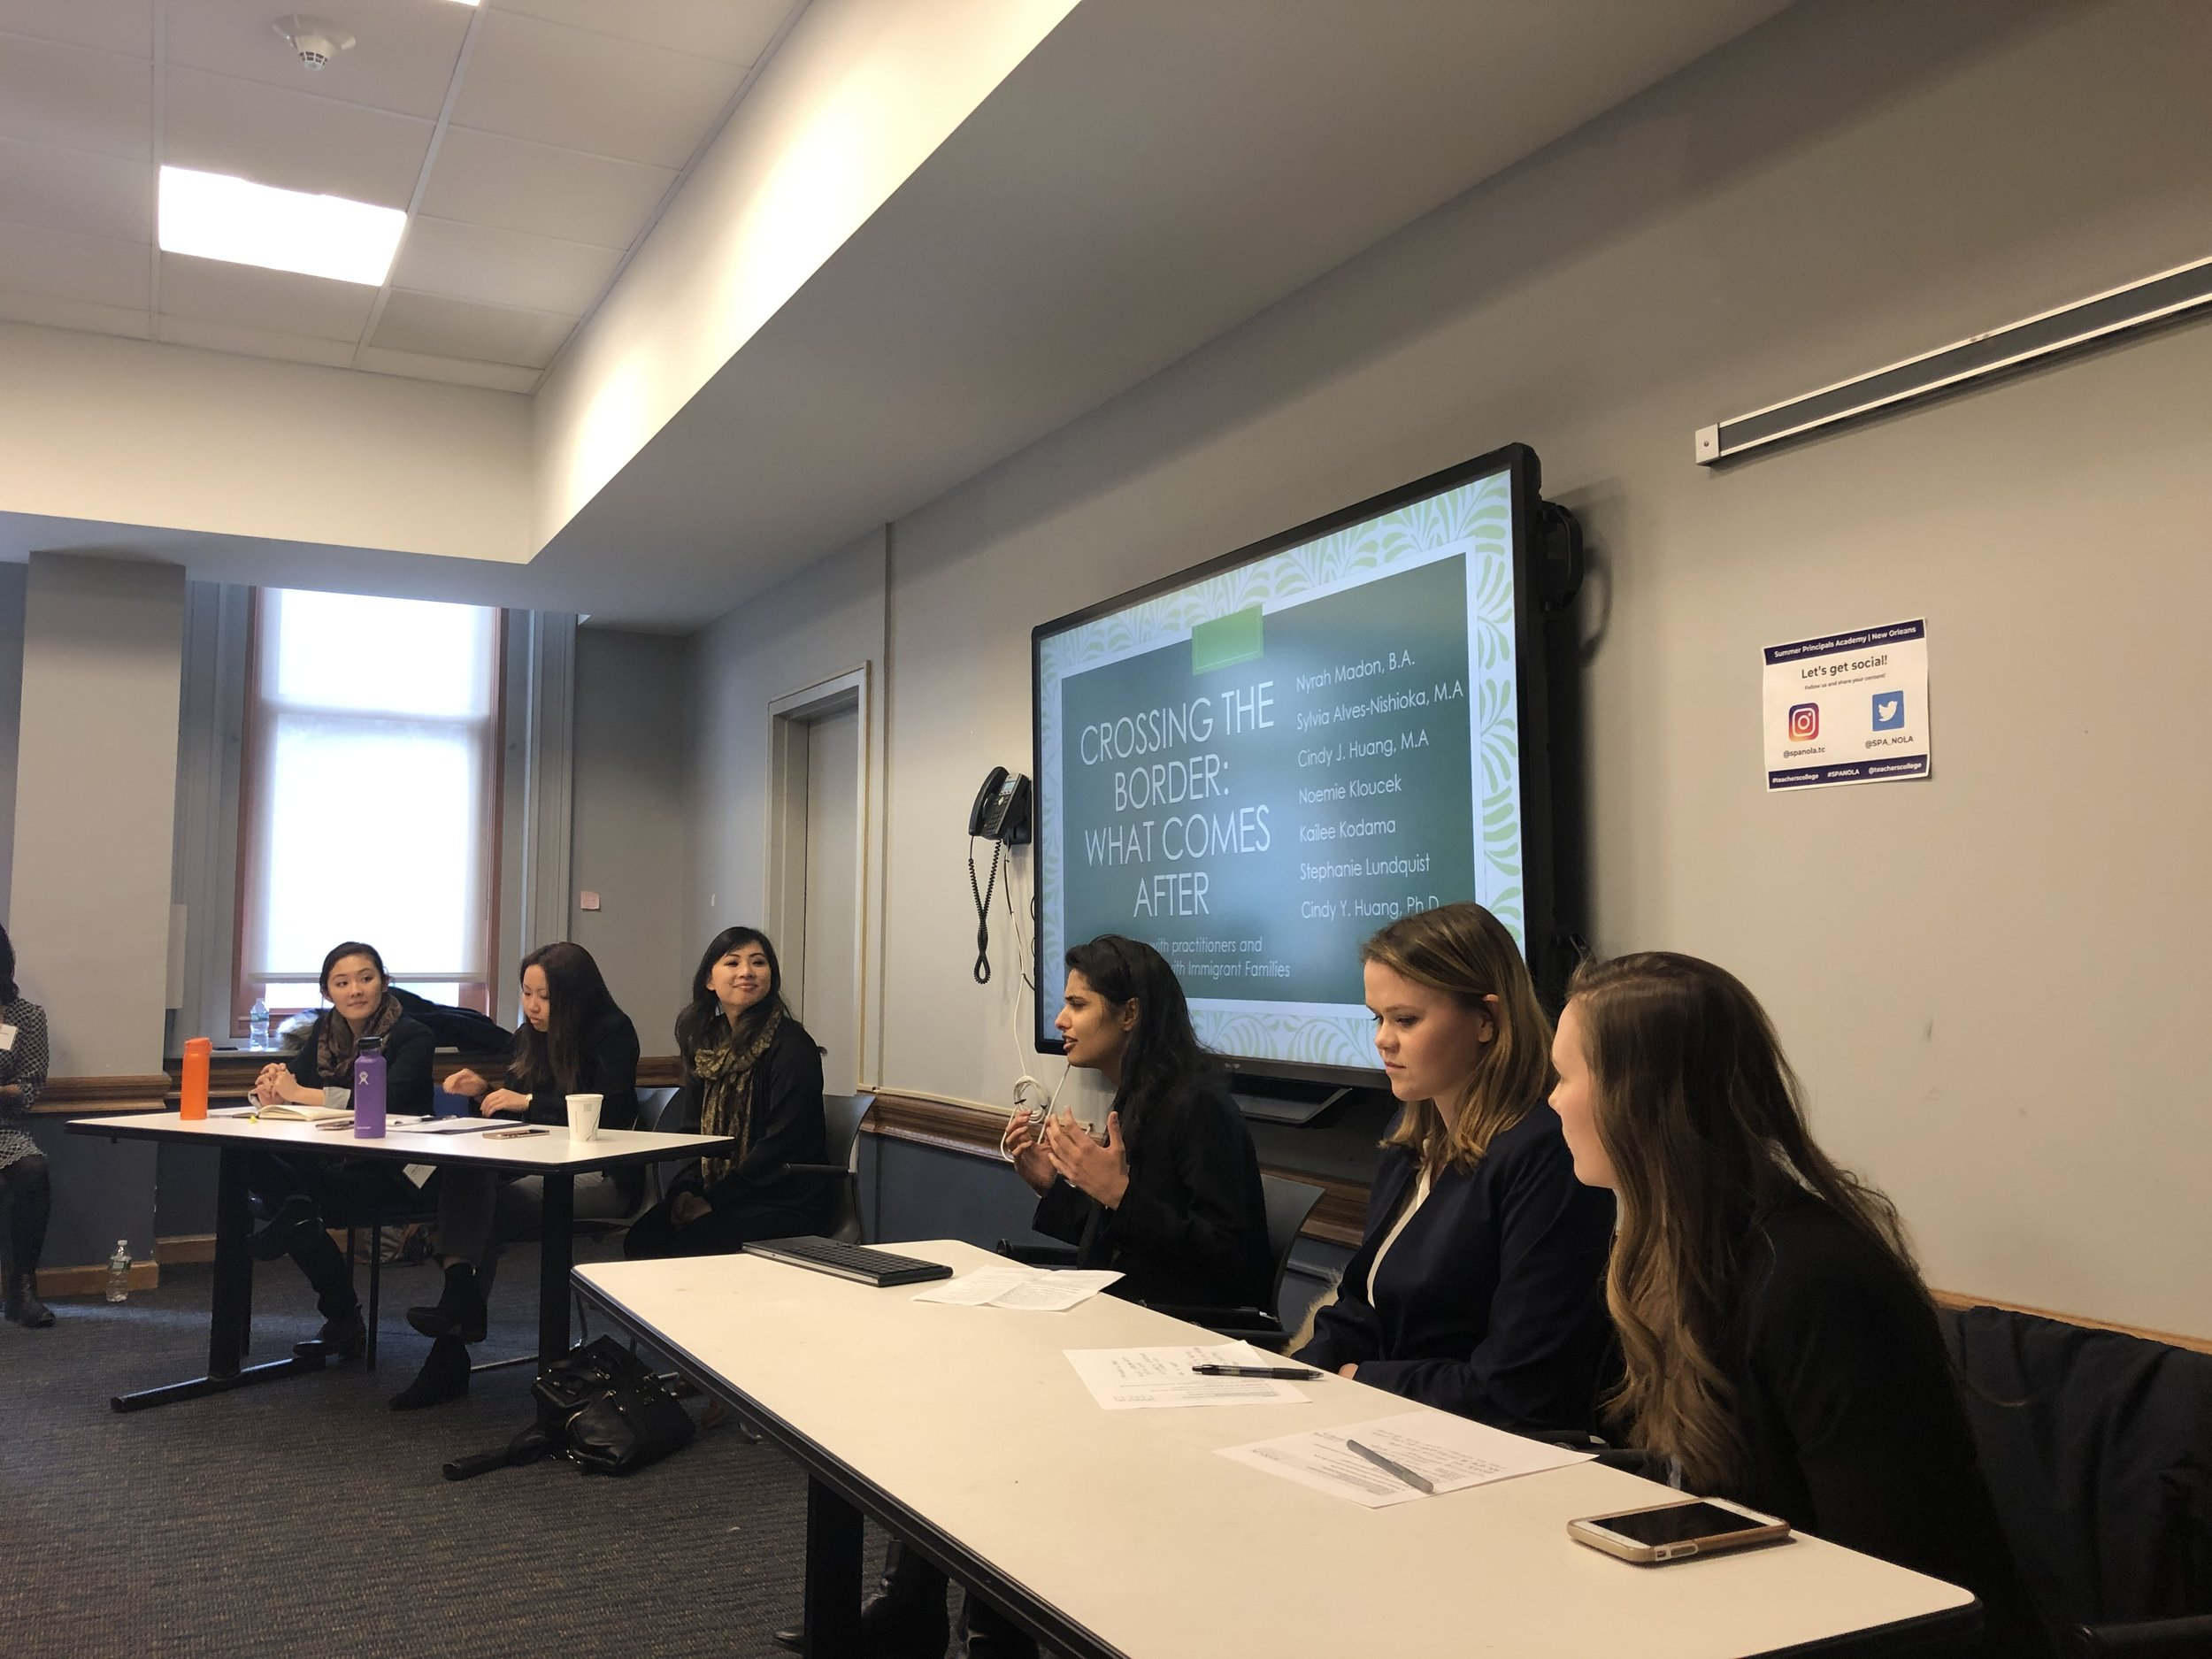 """""""Crossing the Border: What Comes After"""" - Nyrah M. introducing and leading the roundtable discussion with Kailee K., Cindy H., Noemie K., and Stephanie L."""